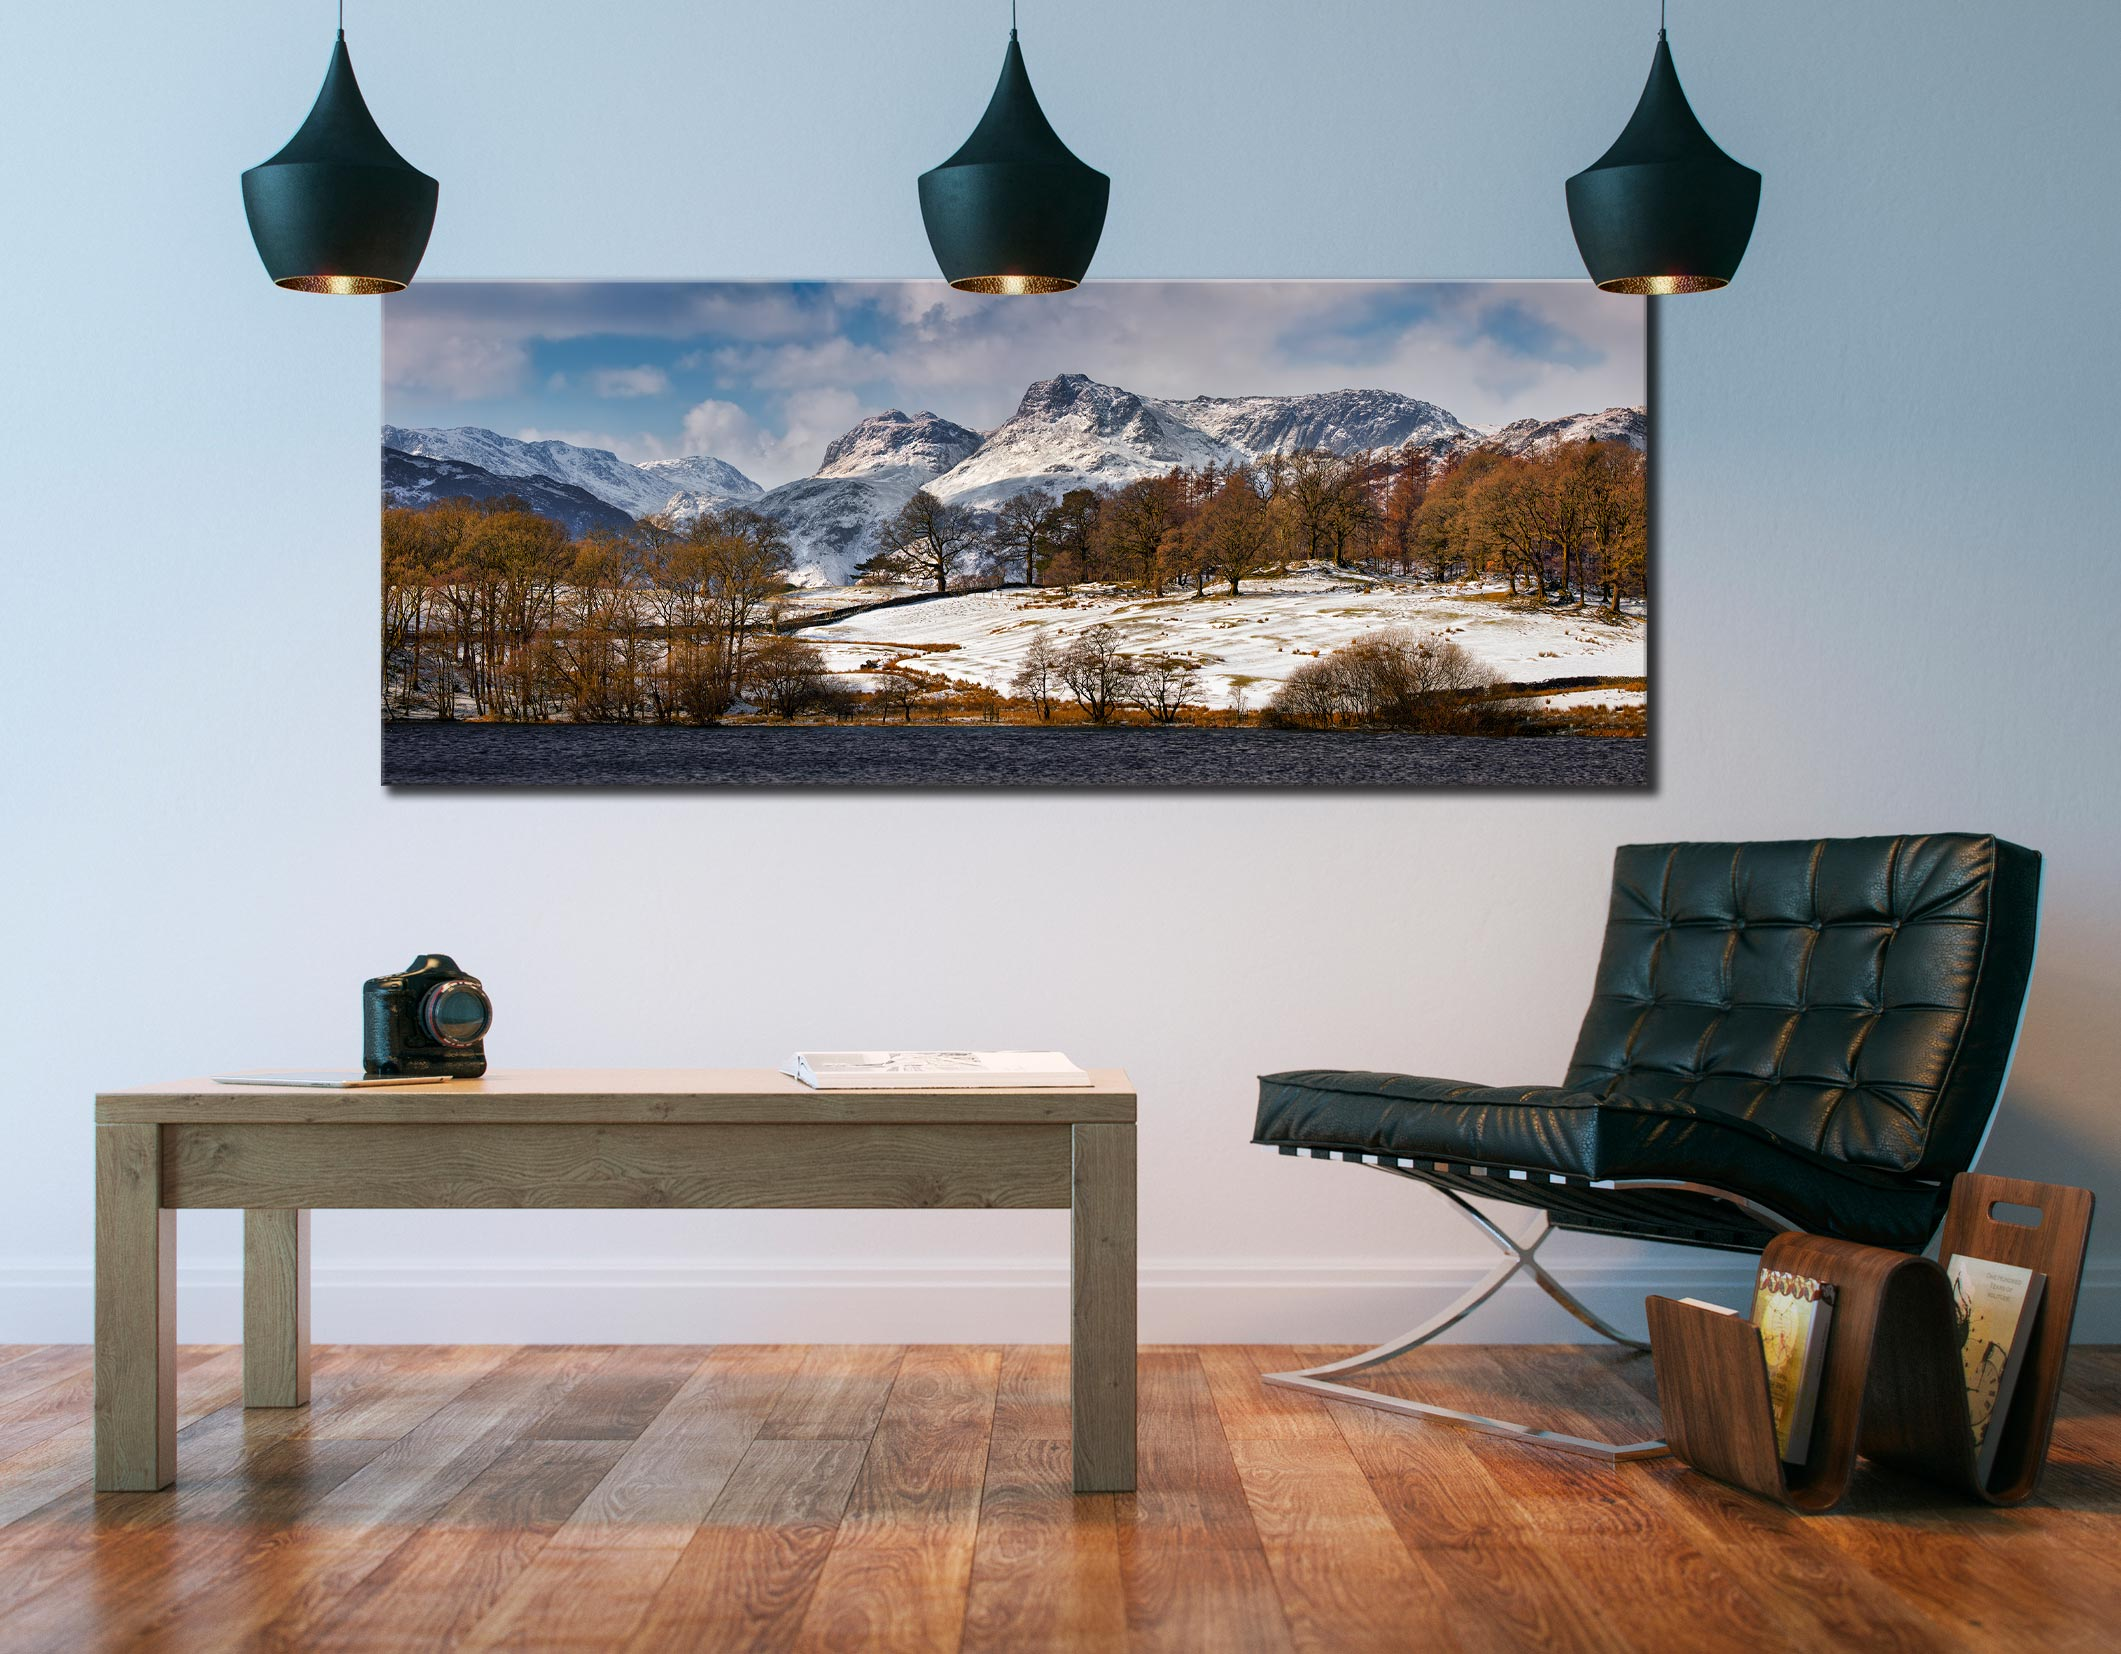 Loughrigg Tarn Winter View - Canvas Print on Wall